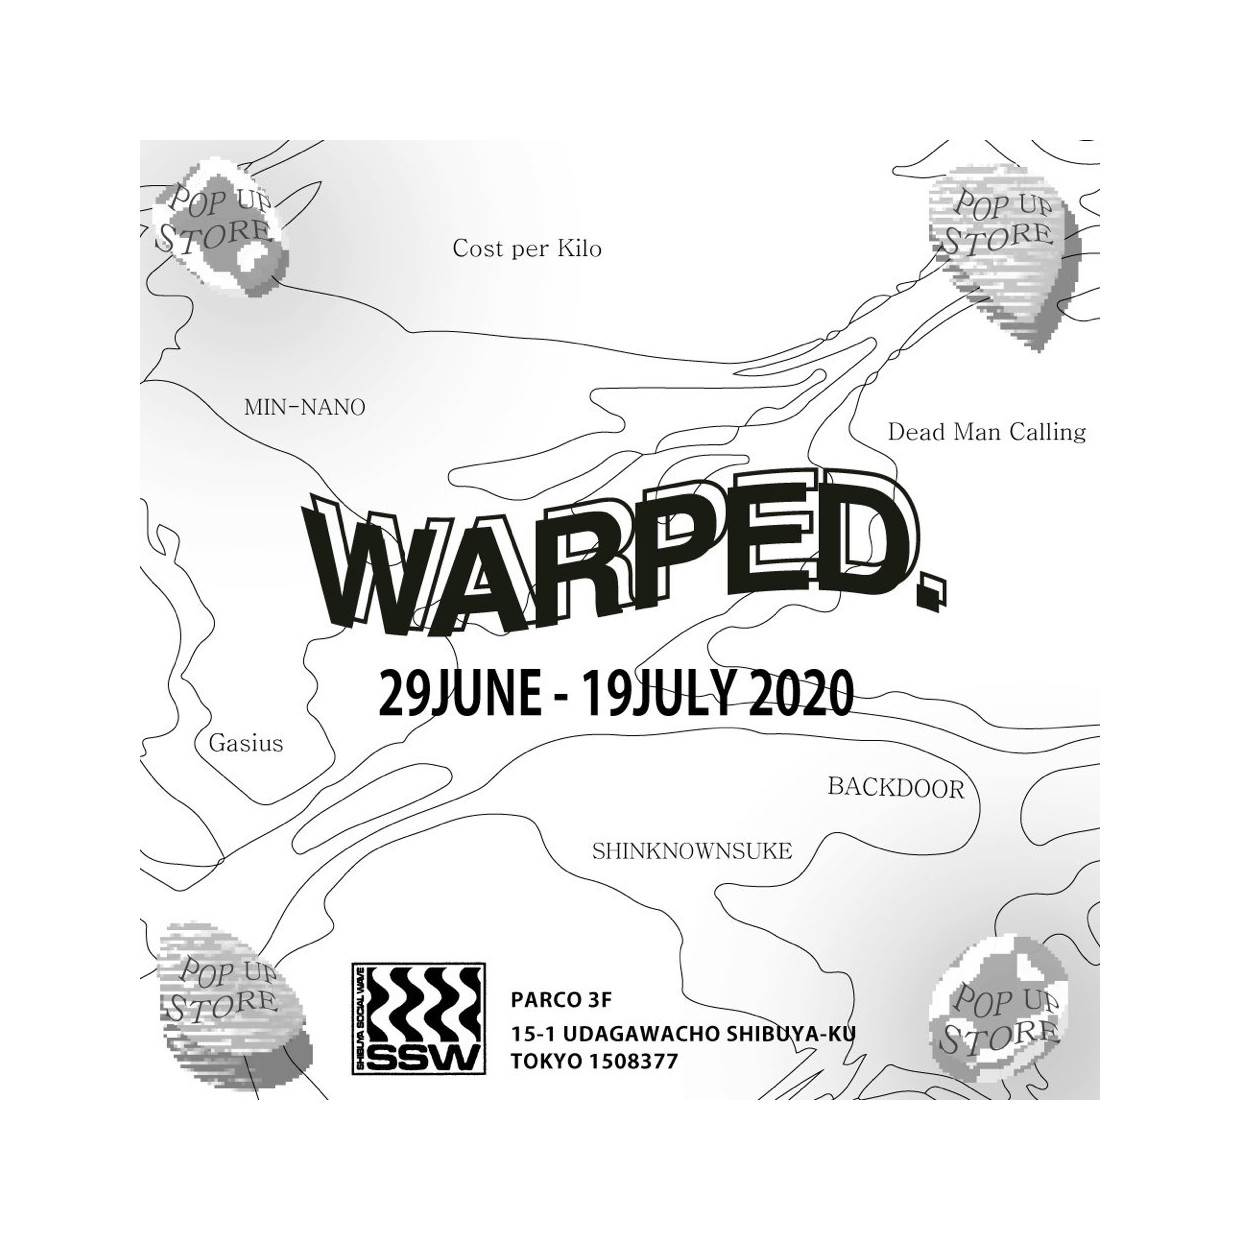 WARPED. POP-UP